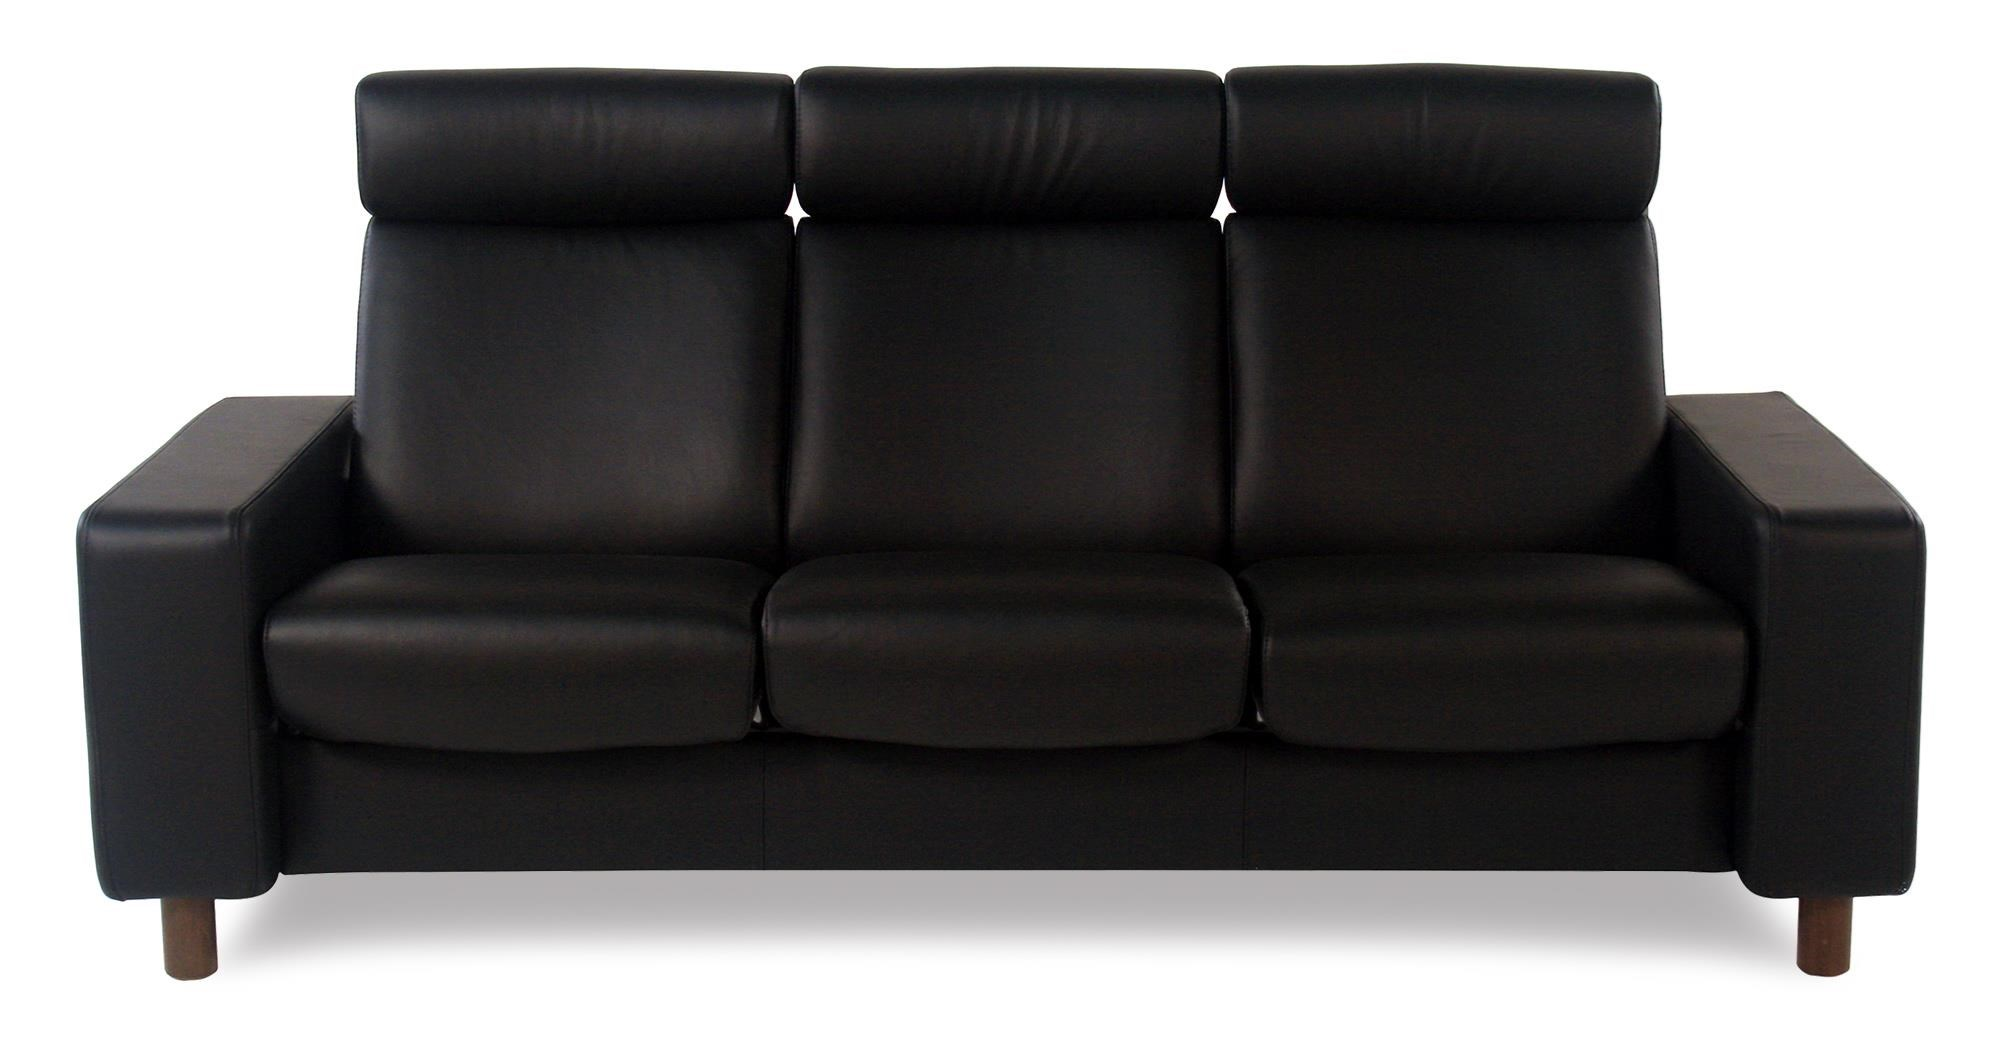 Ekornes Stressless Buckingham Sofa High Back Sofa Stressless Buckingham 3 Seat High Back Sofa